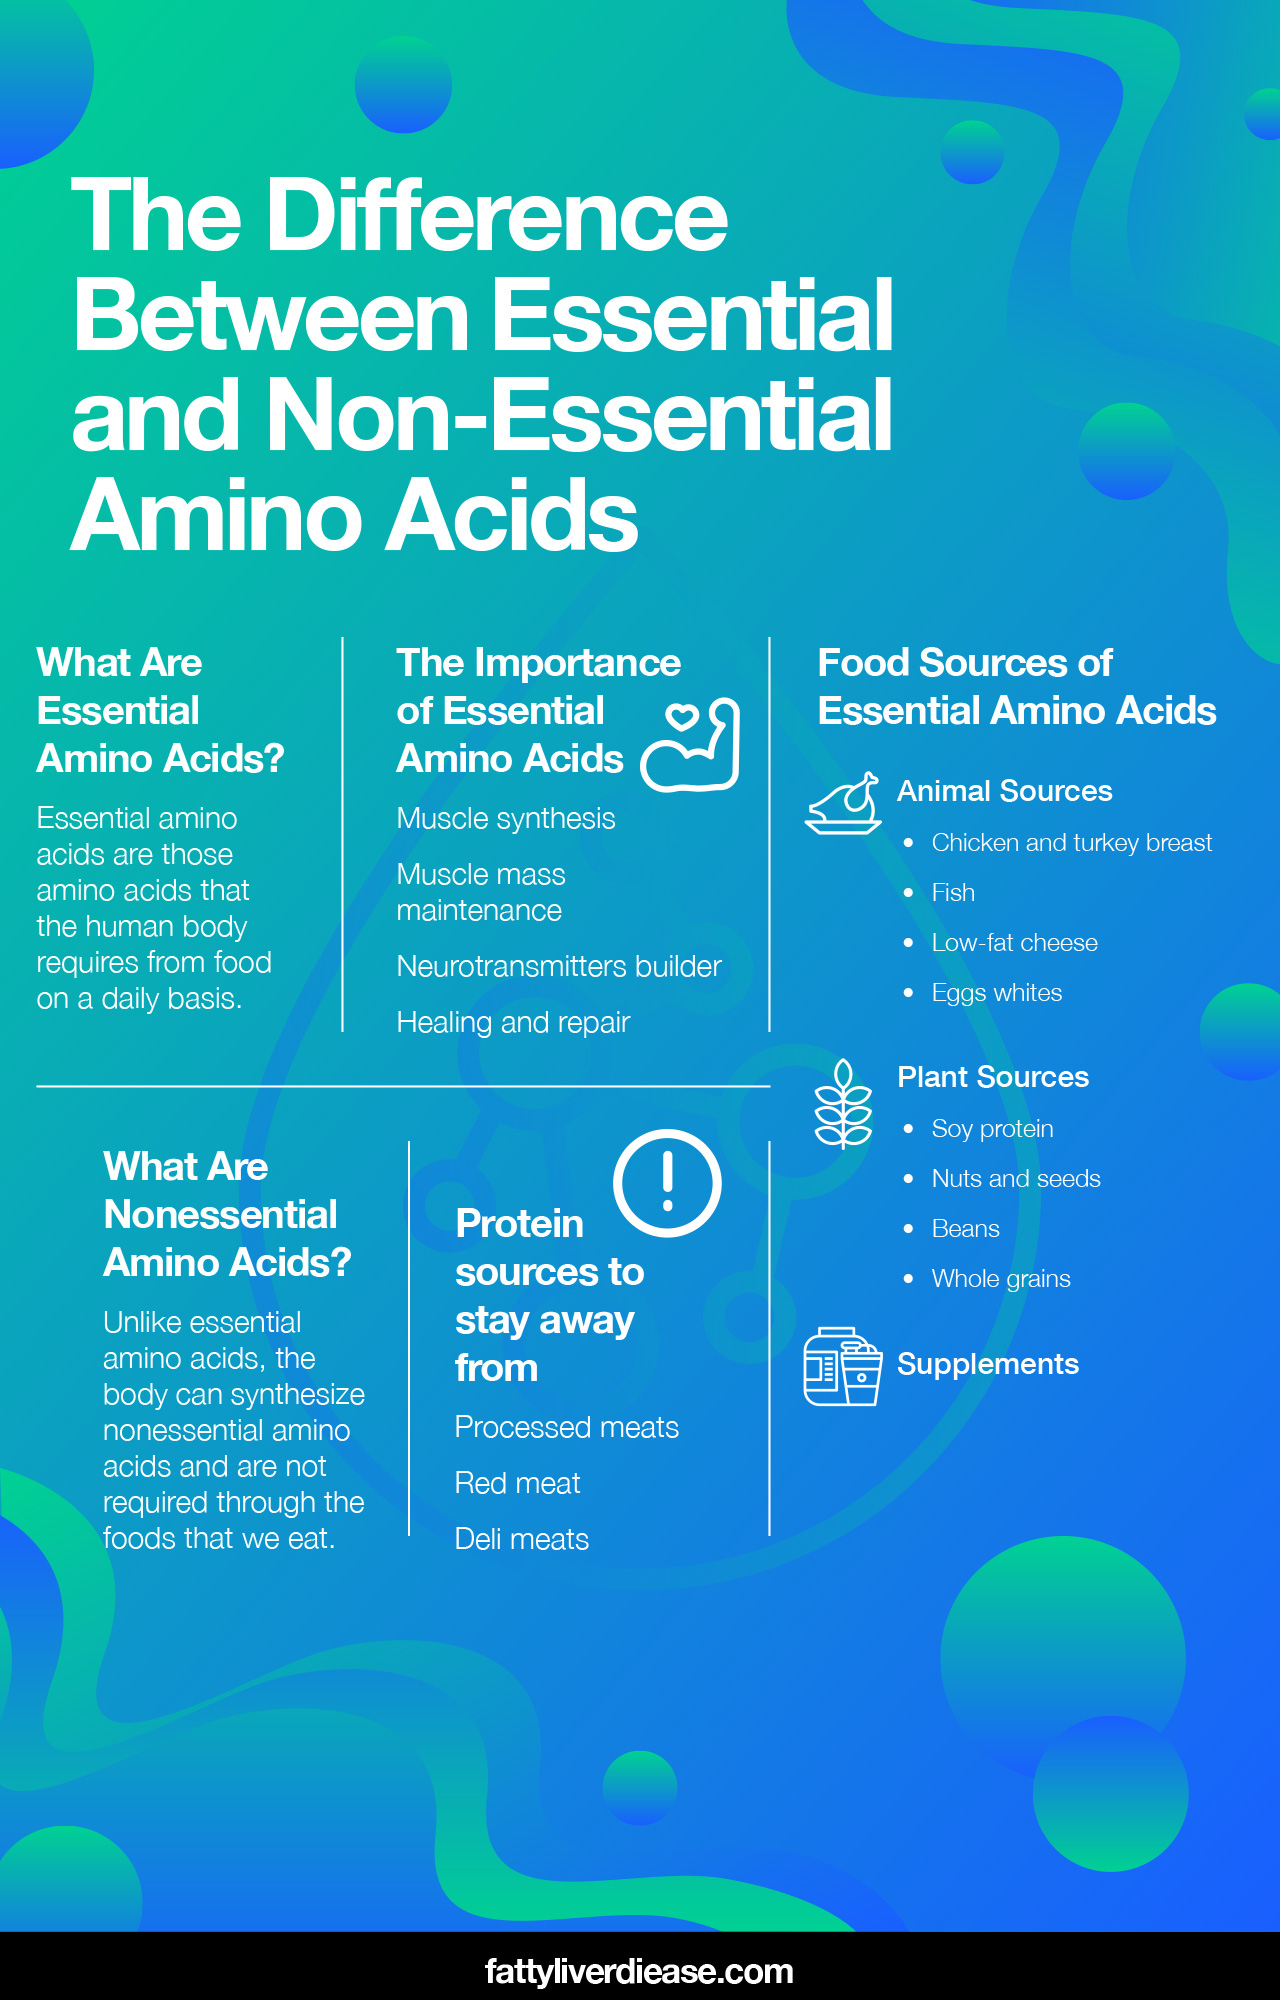 Difference Between Essential and Non-Essential Amino Acids